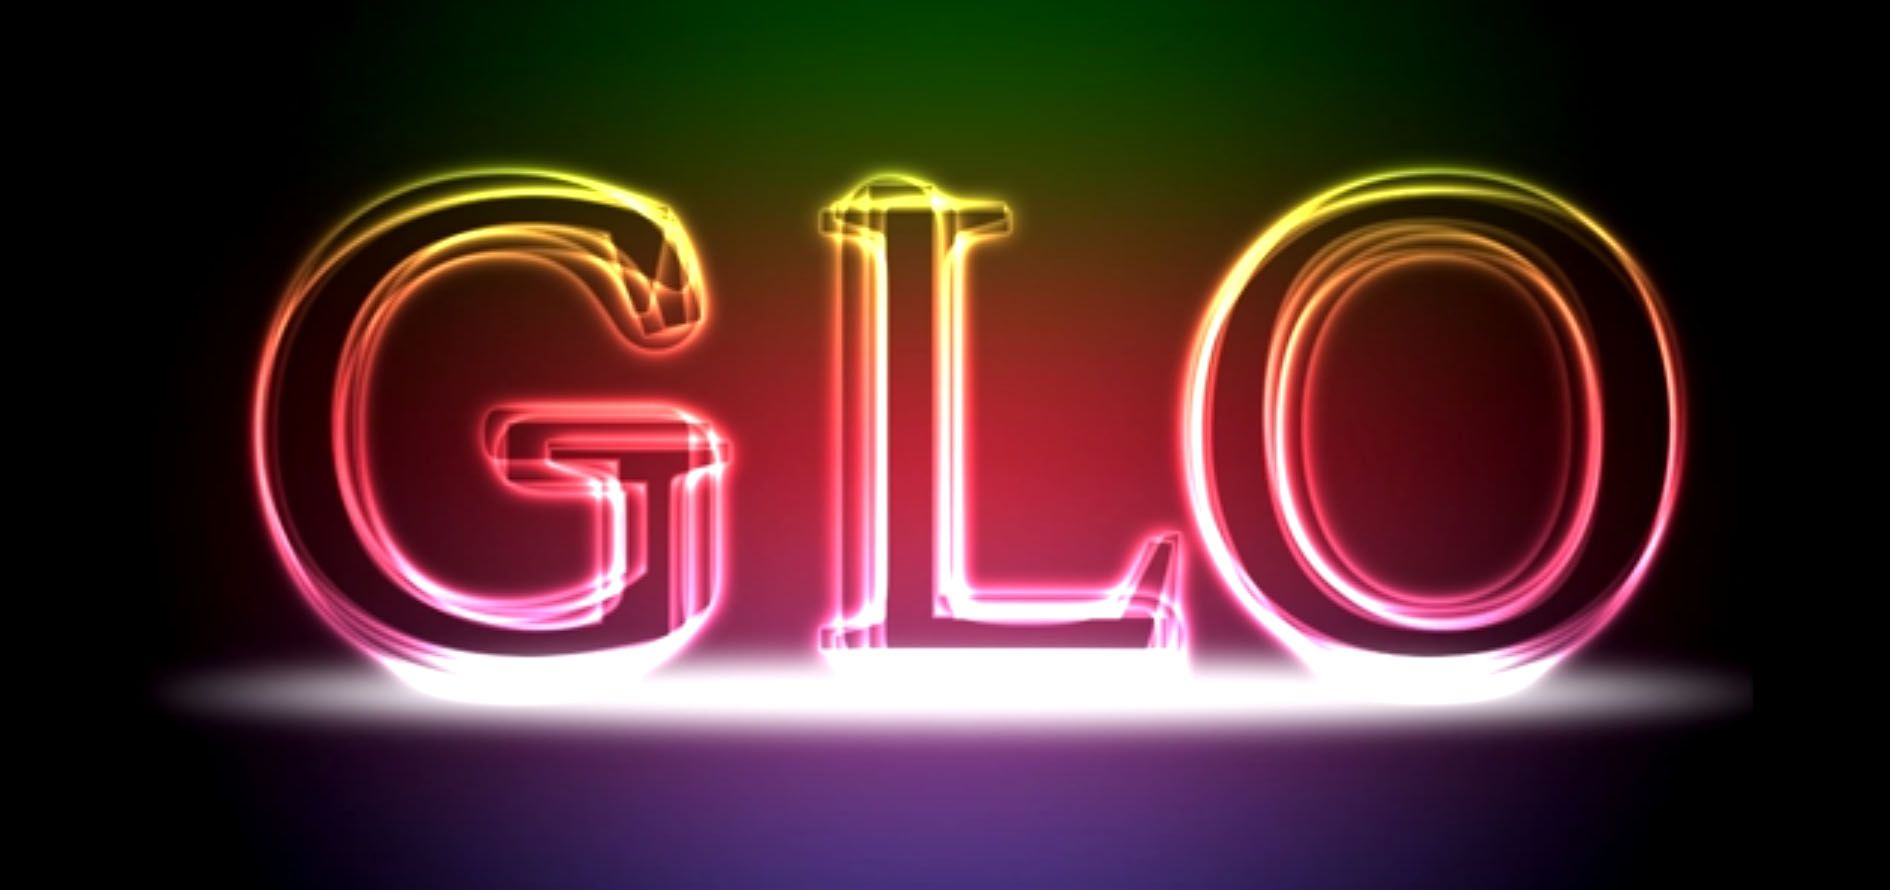 Create a glowing text effect photoshop tutorial photoshop tutorial create a glowing text effect photoshop tutorial baditri Gallery